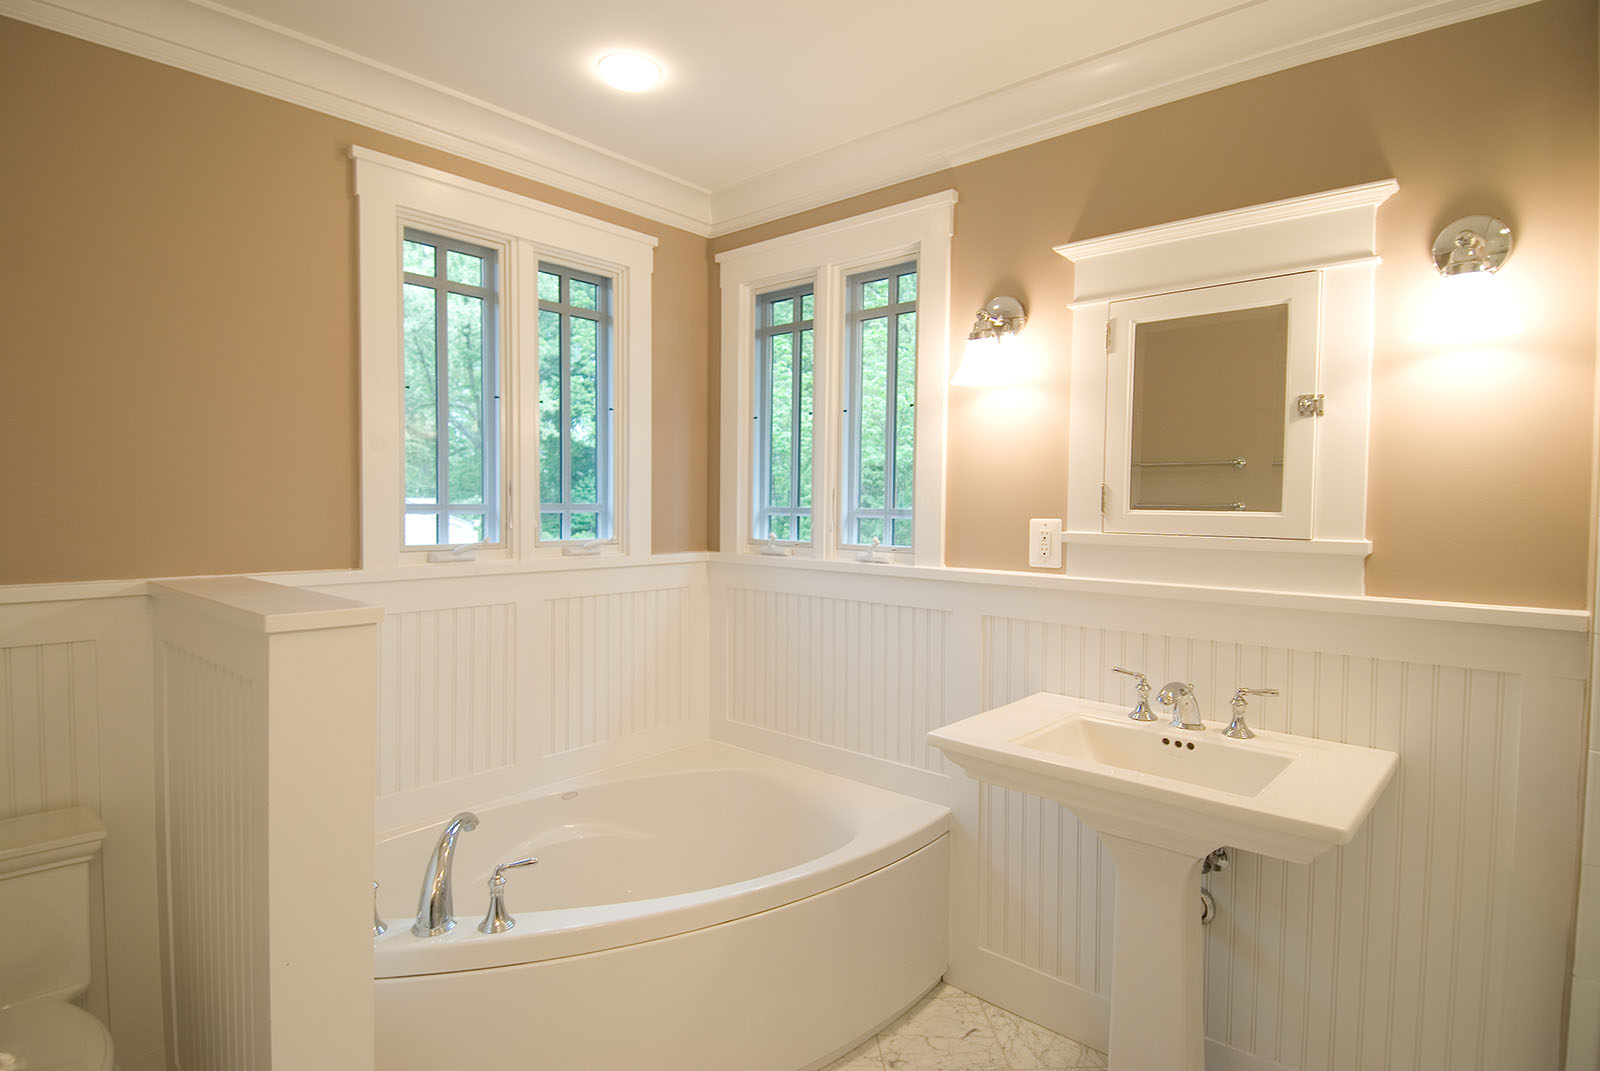 Bathroom remodeling old dominion building group How to remodel a bathroom